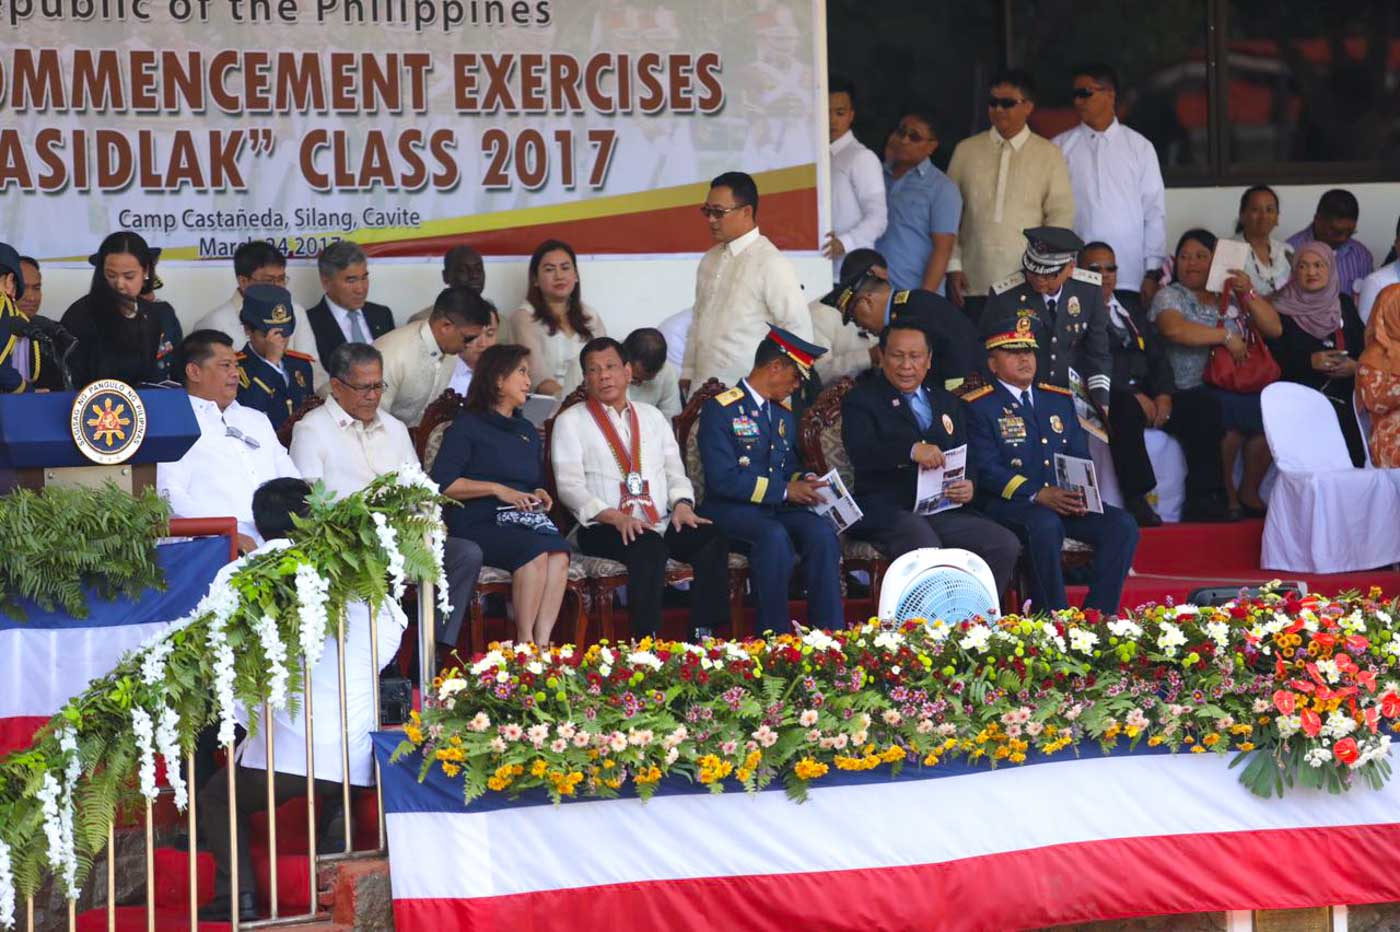 WHAT DID THEY TALK ABOUT? Vice President Leni Robredo and President Rodrigo Duterte chat at the Commencement Exercises of Philippine National Police Academy Class 2017. Photo from Office of the Vice President